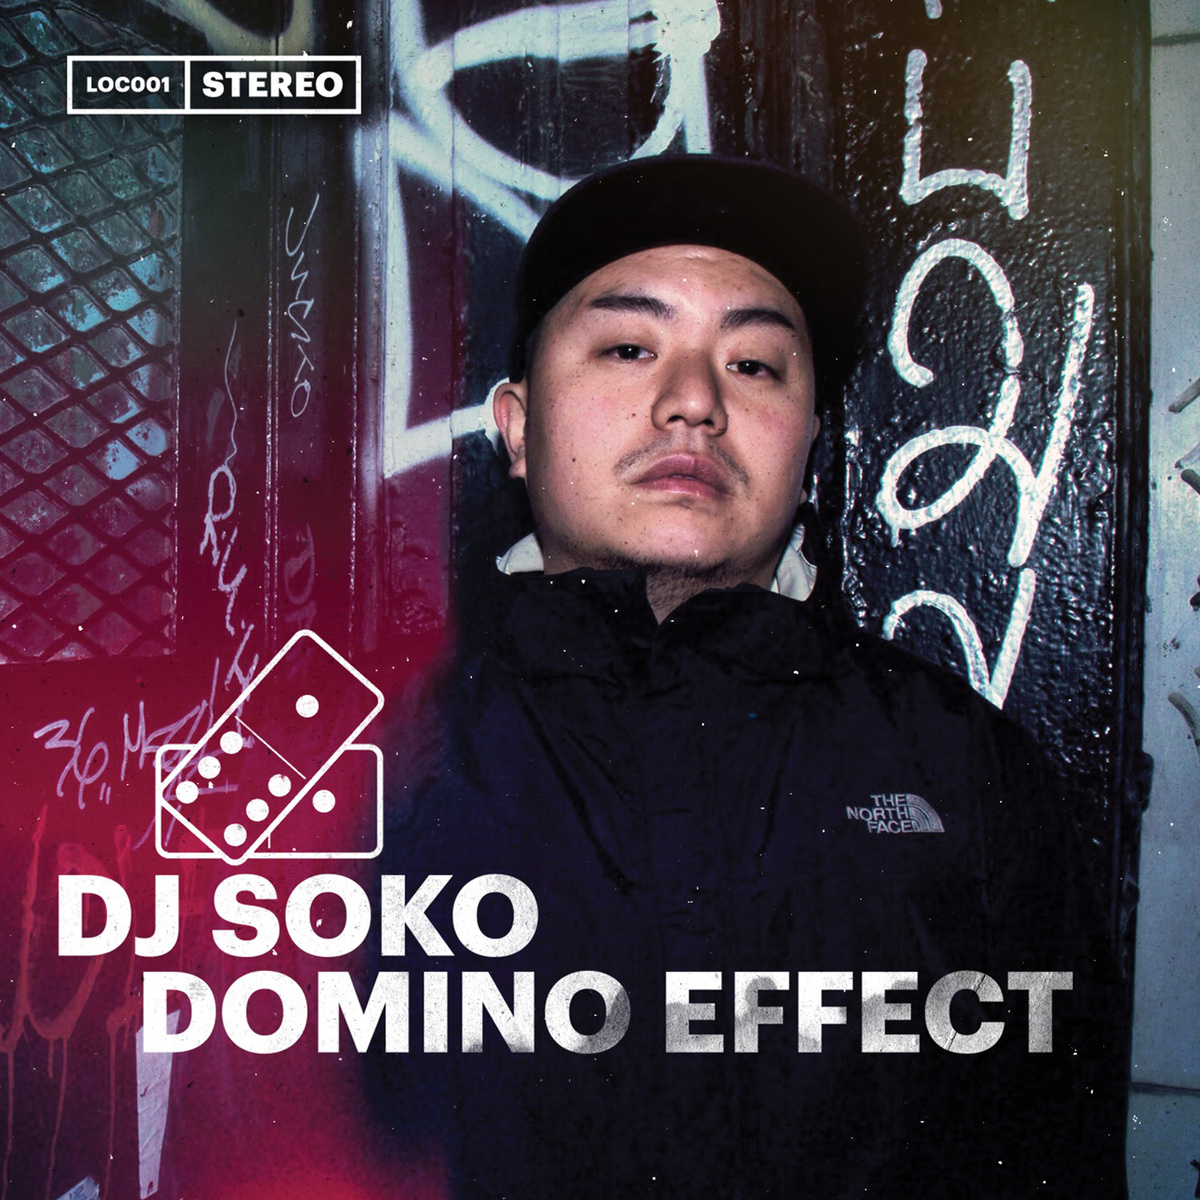 Dj_soko_-_domino_effect